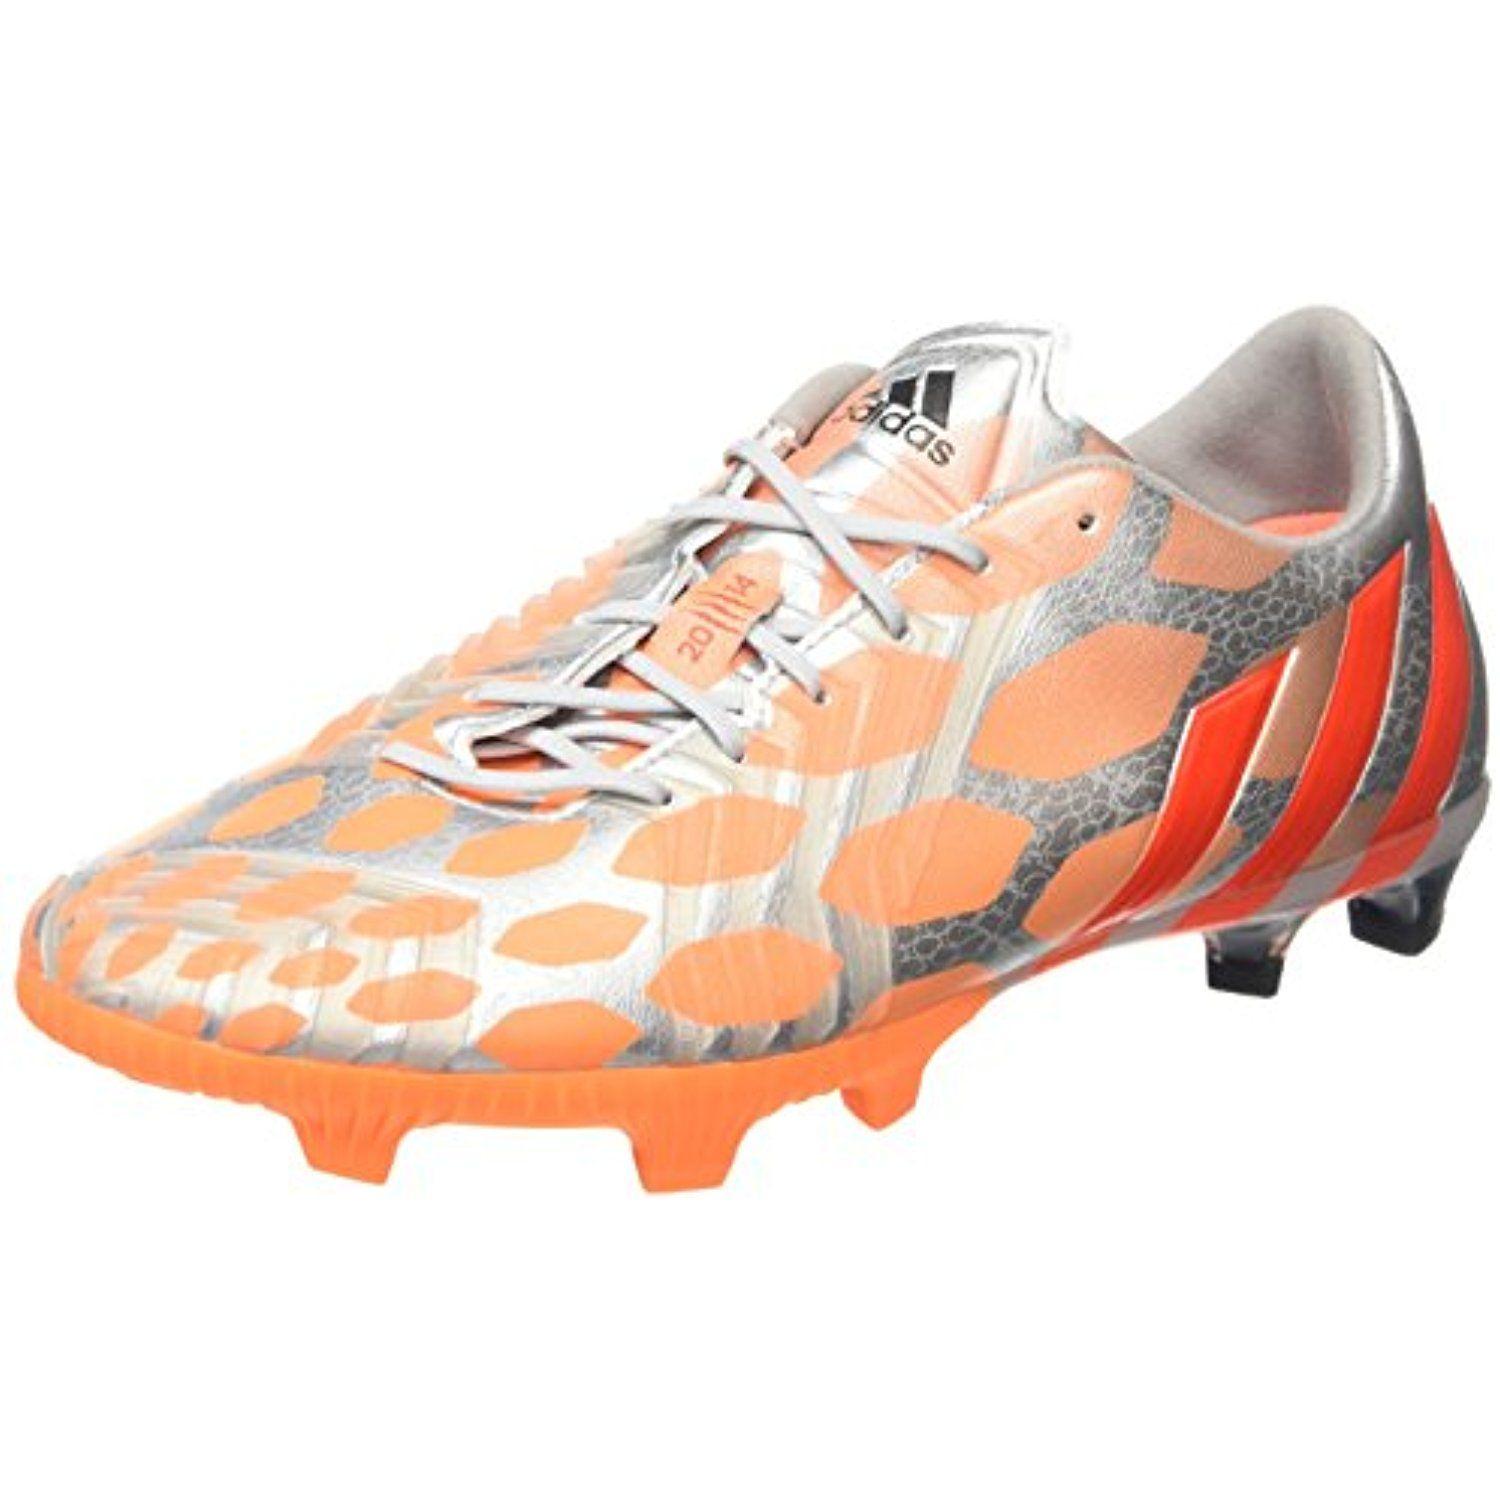 Predator Instinct FG W Womens Soccer Cleats     You can get additional  details at 24cb99b3c4